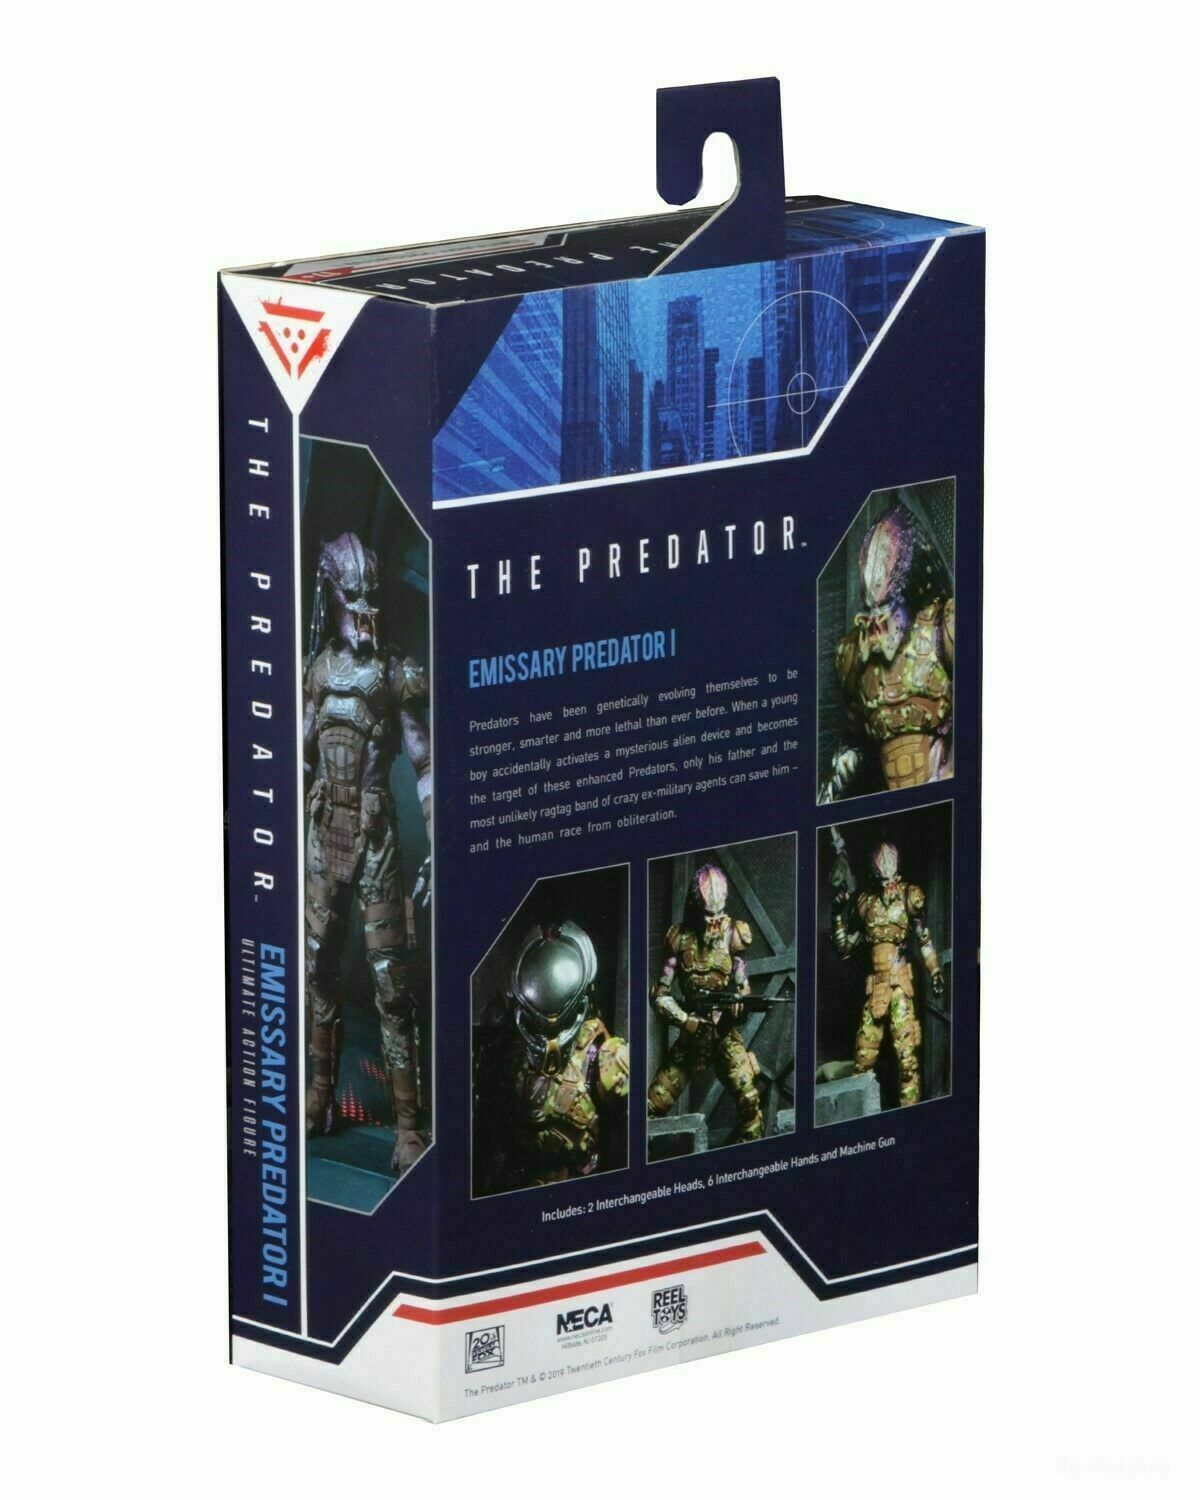 The Prossoator Emissary Emissary Emissary  1 Movie 2018 Prossoators Ultimate azione cifra Deluxe NECA 7d8d0e